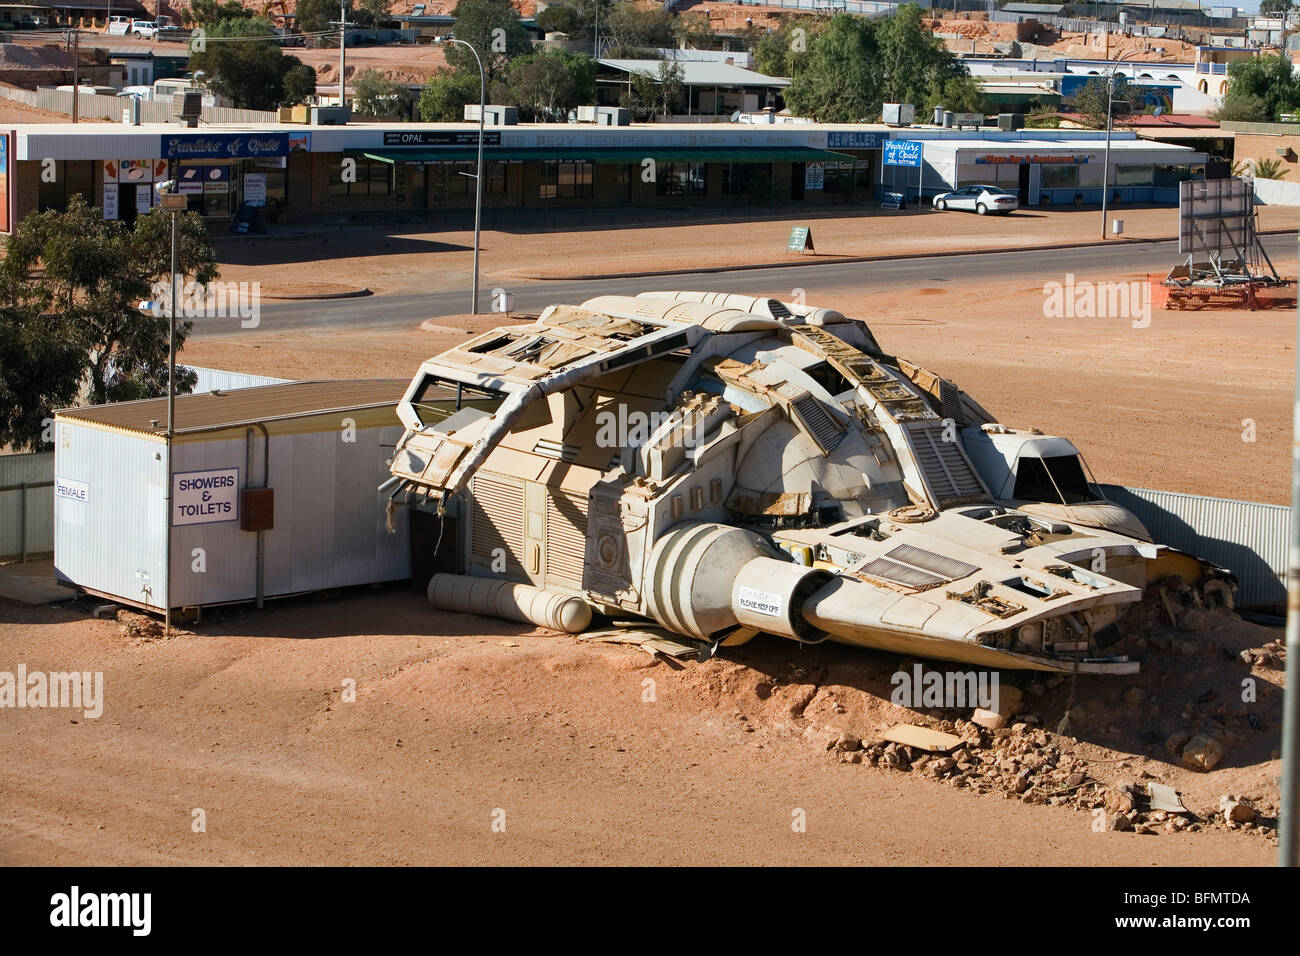 Australia, South Australia, Coober Pedy. A movie prop spaceship from the film Pitch Black left in the township of - Stock Image